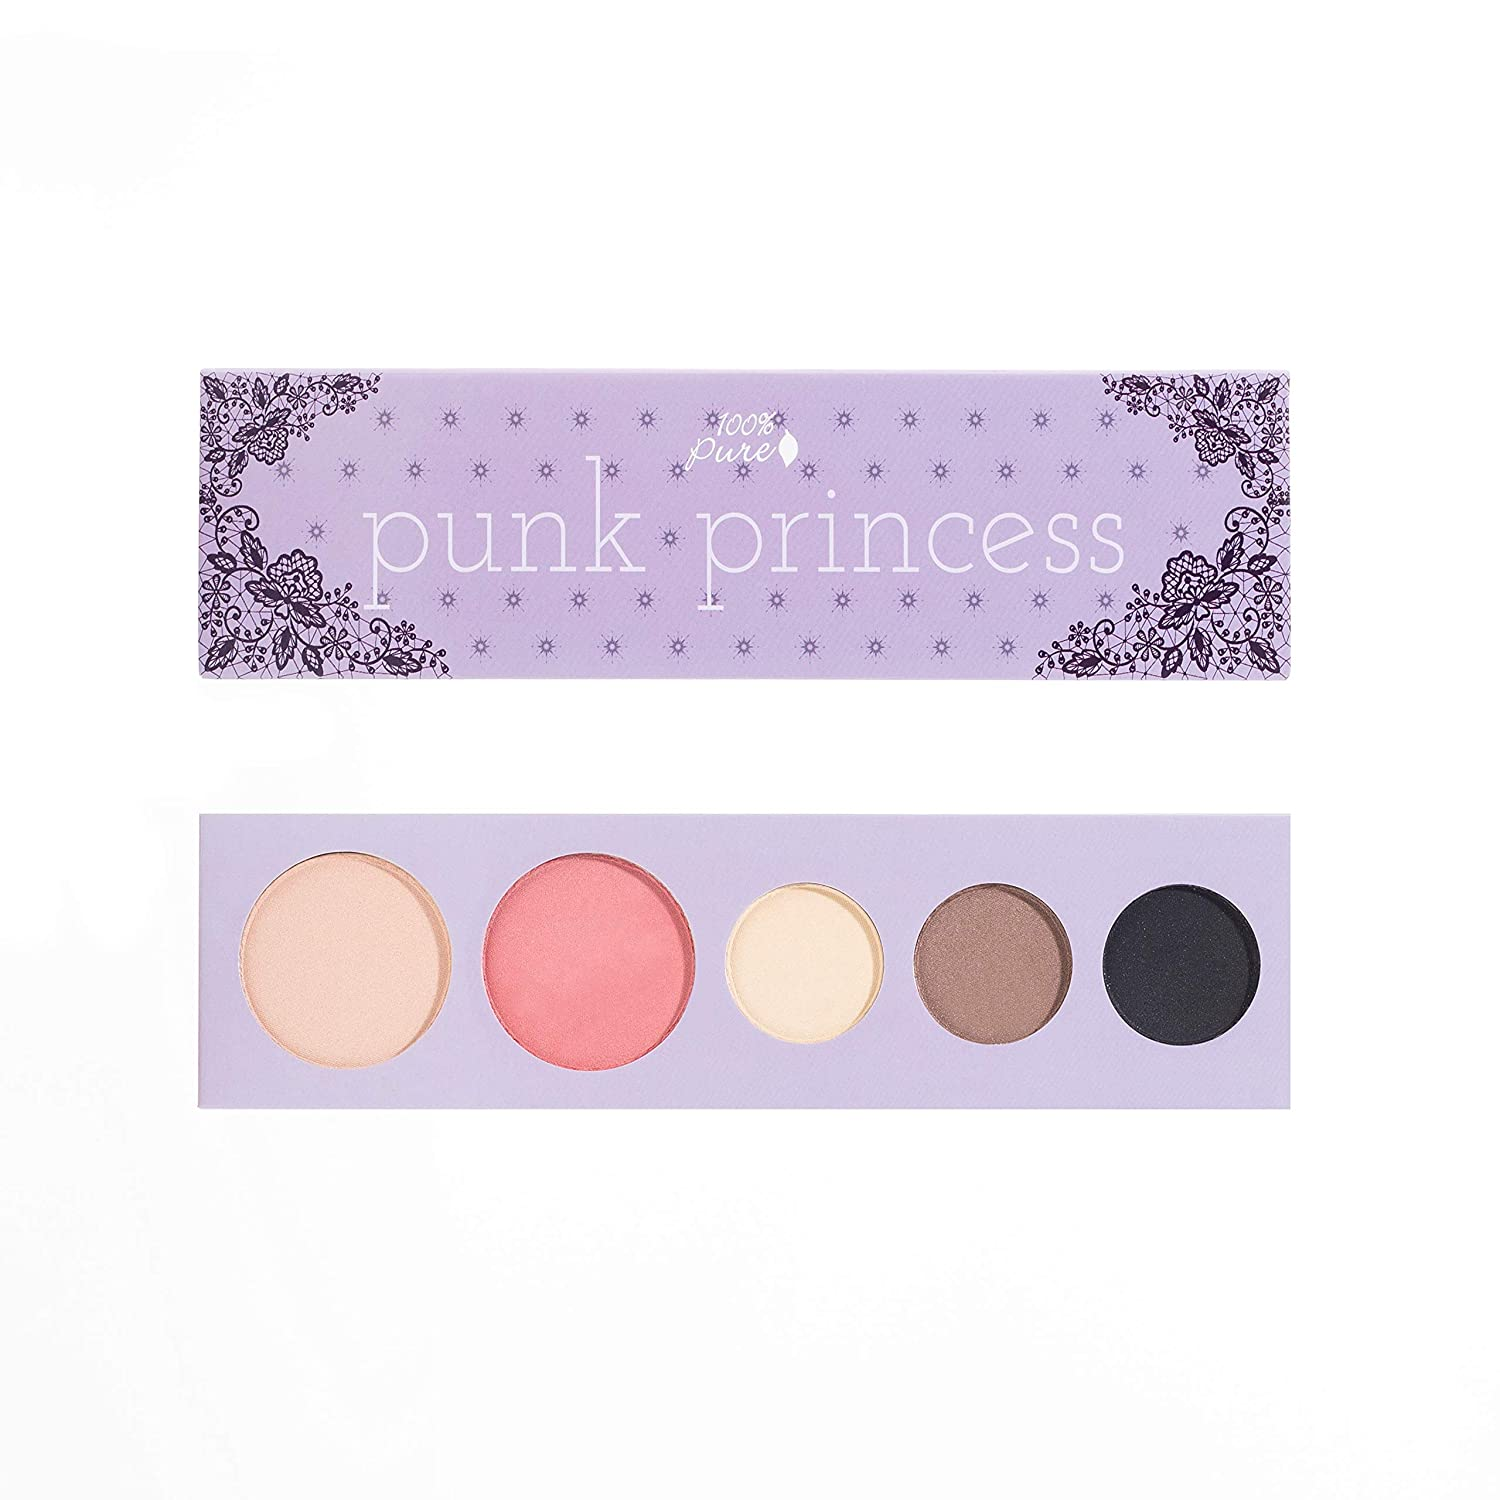 100% PURE Punk Princess Palette (Fruit Pigmented), Bold, Edgy Makeup Palette w/ 3 Eyeshadows, Blush, Face Highlighter, Natural, Vegan Makeup (Soft, Smokey, Shimmery Tones)